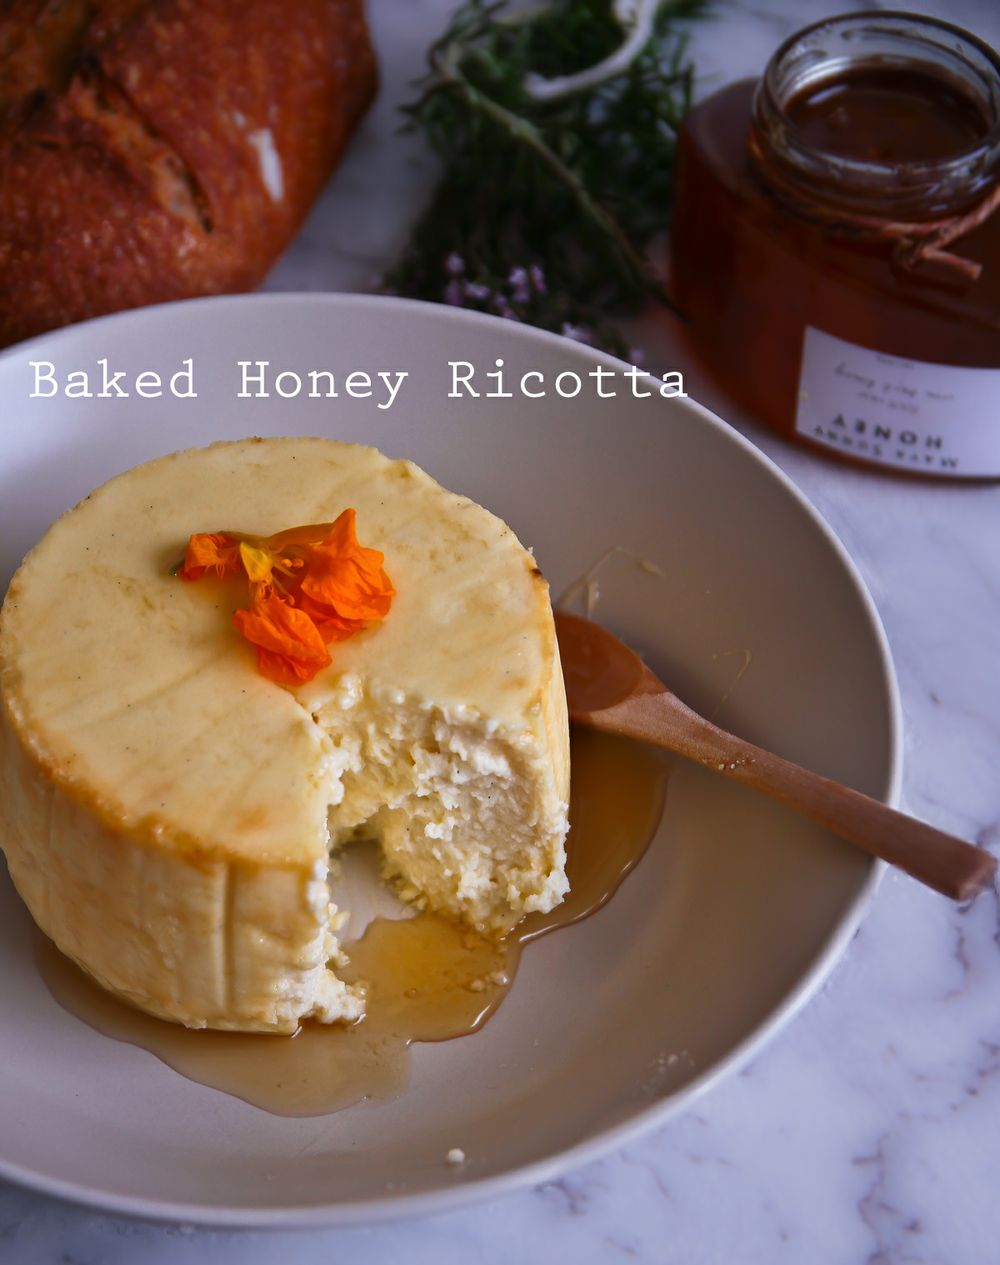 Baked Ricotta With Honey